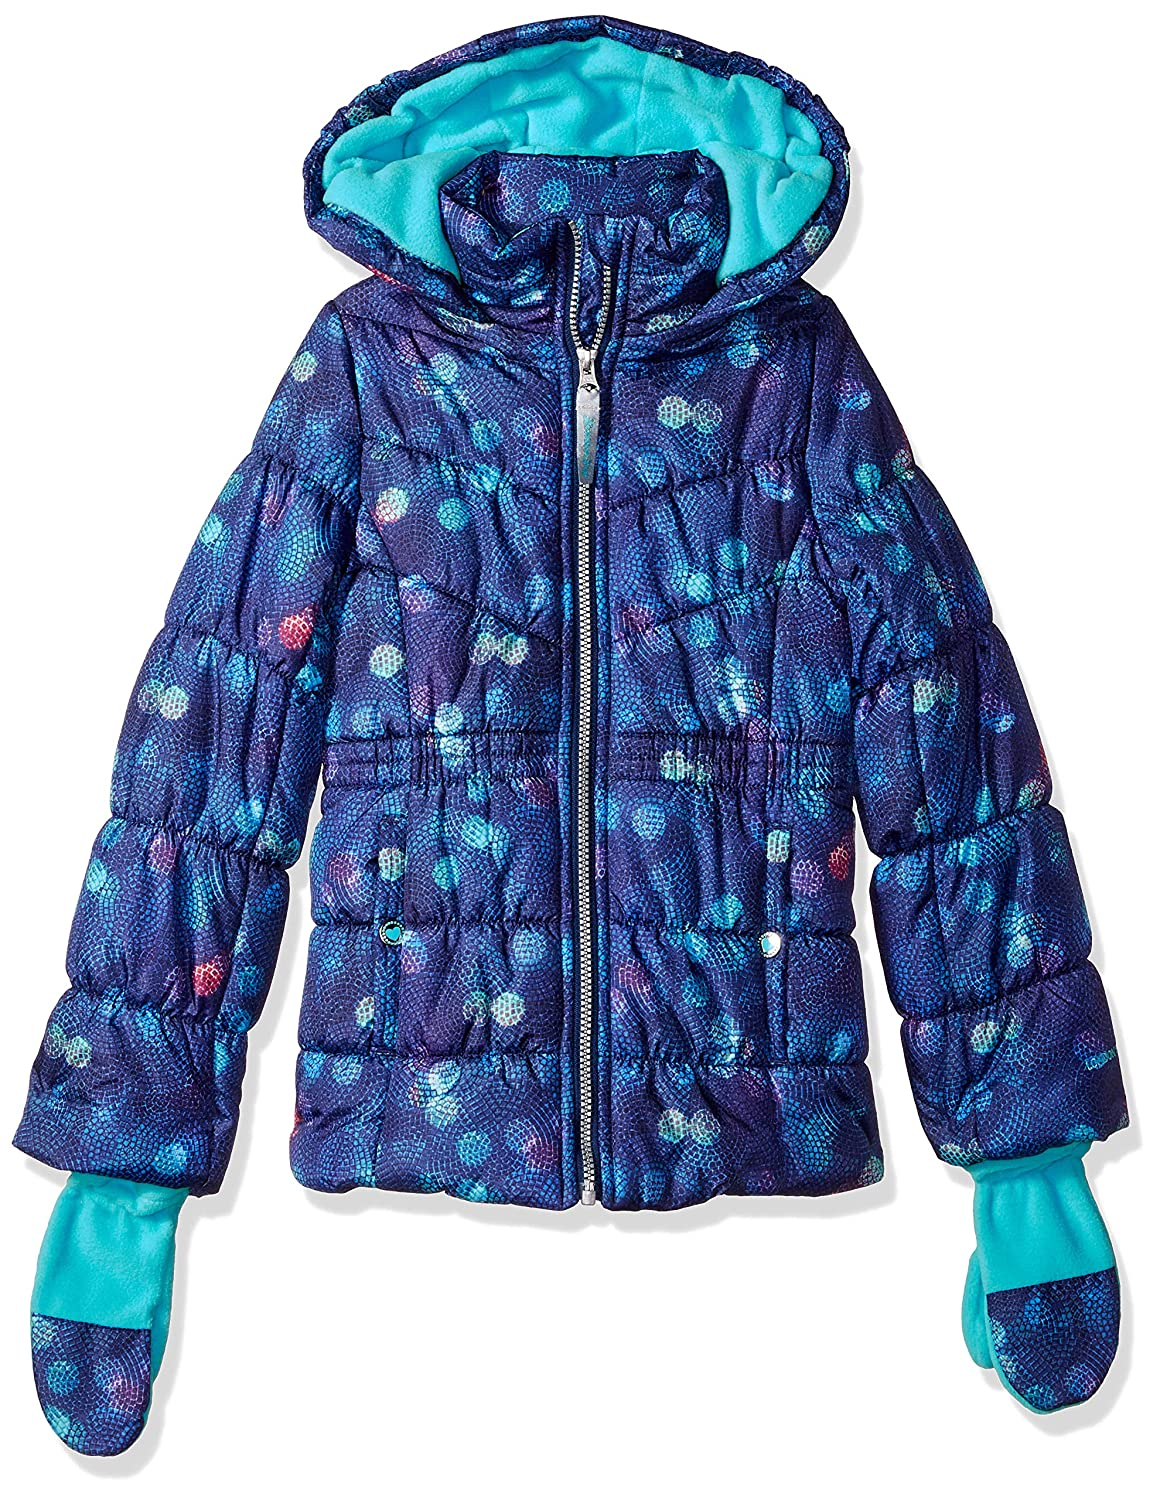 London Fog Girls' Big Warm Winter Jacket Coat with Accessory